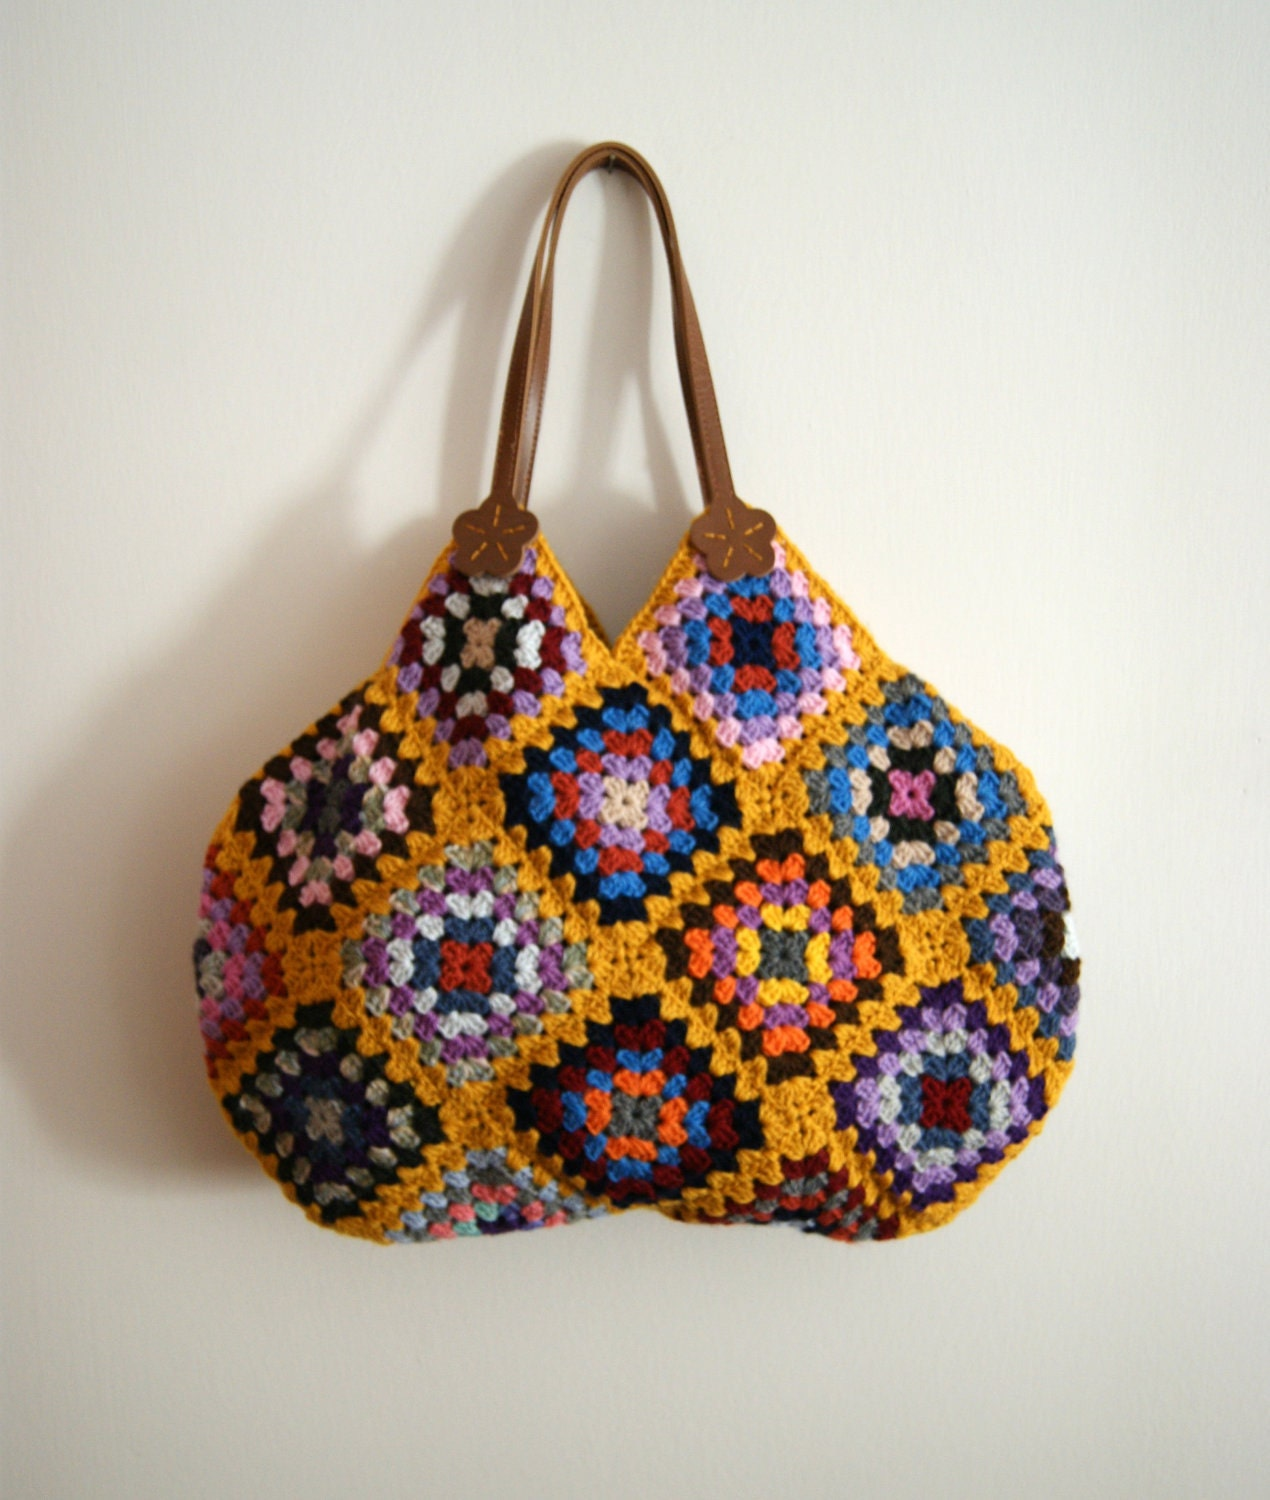 Mustard Crochet granny square bag by knittingcate on Etsy